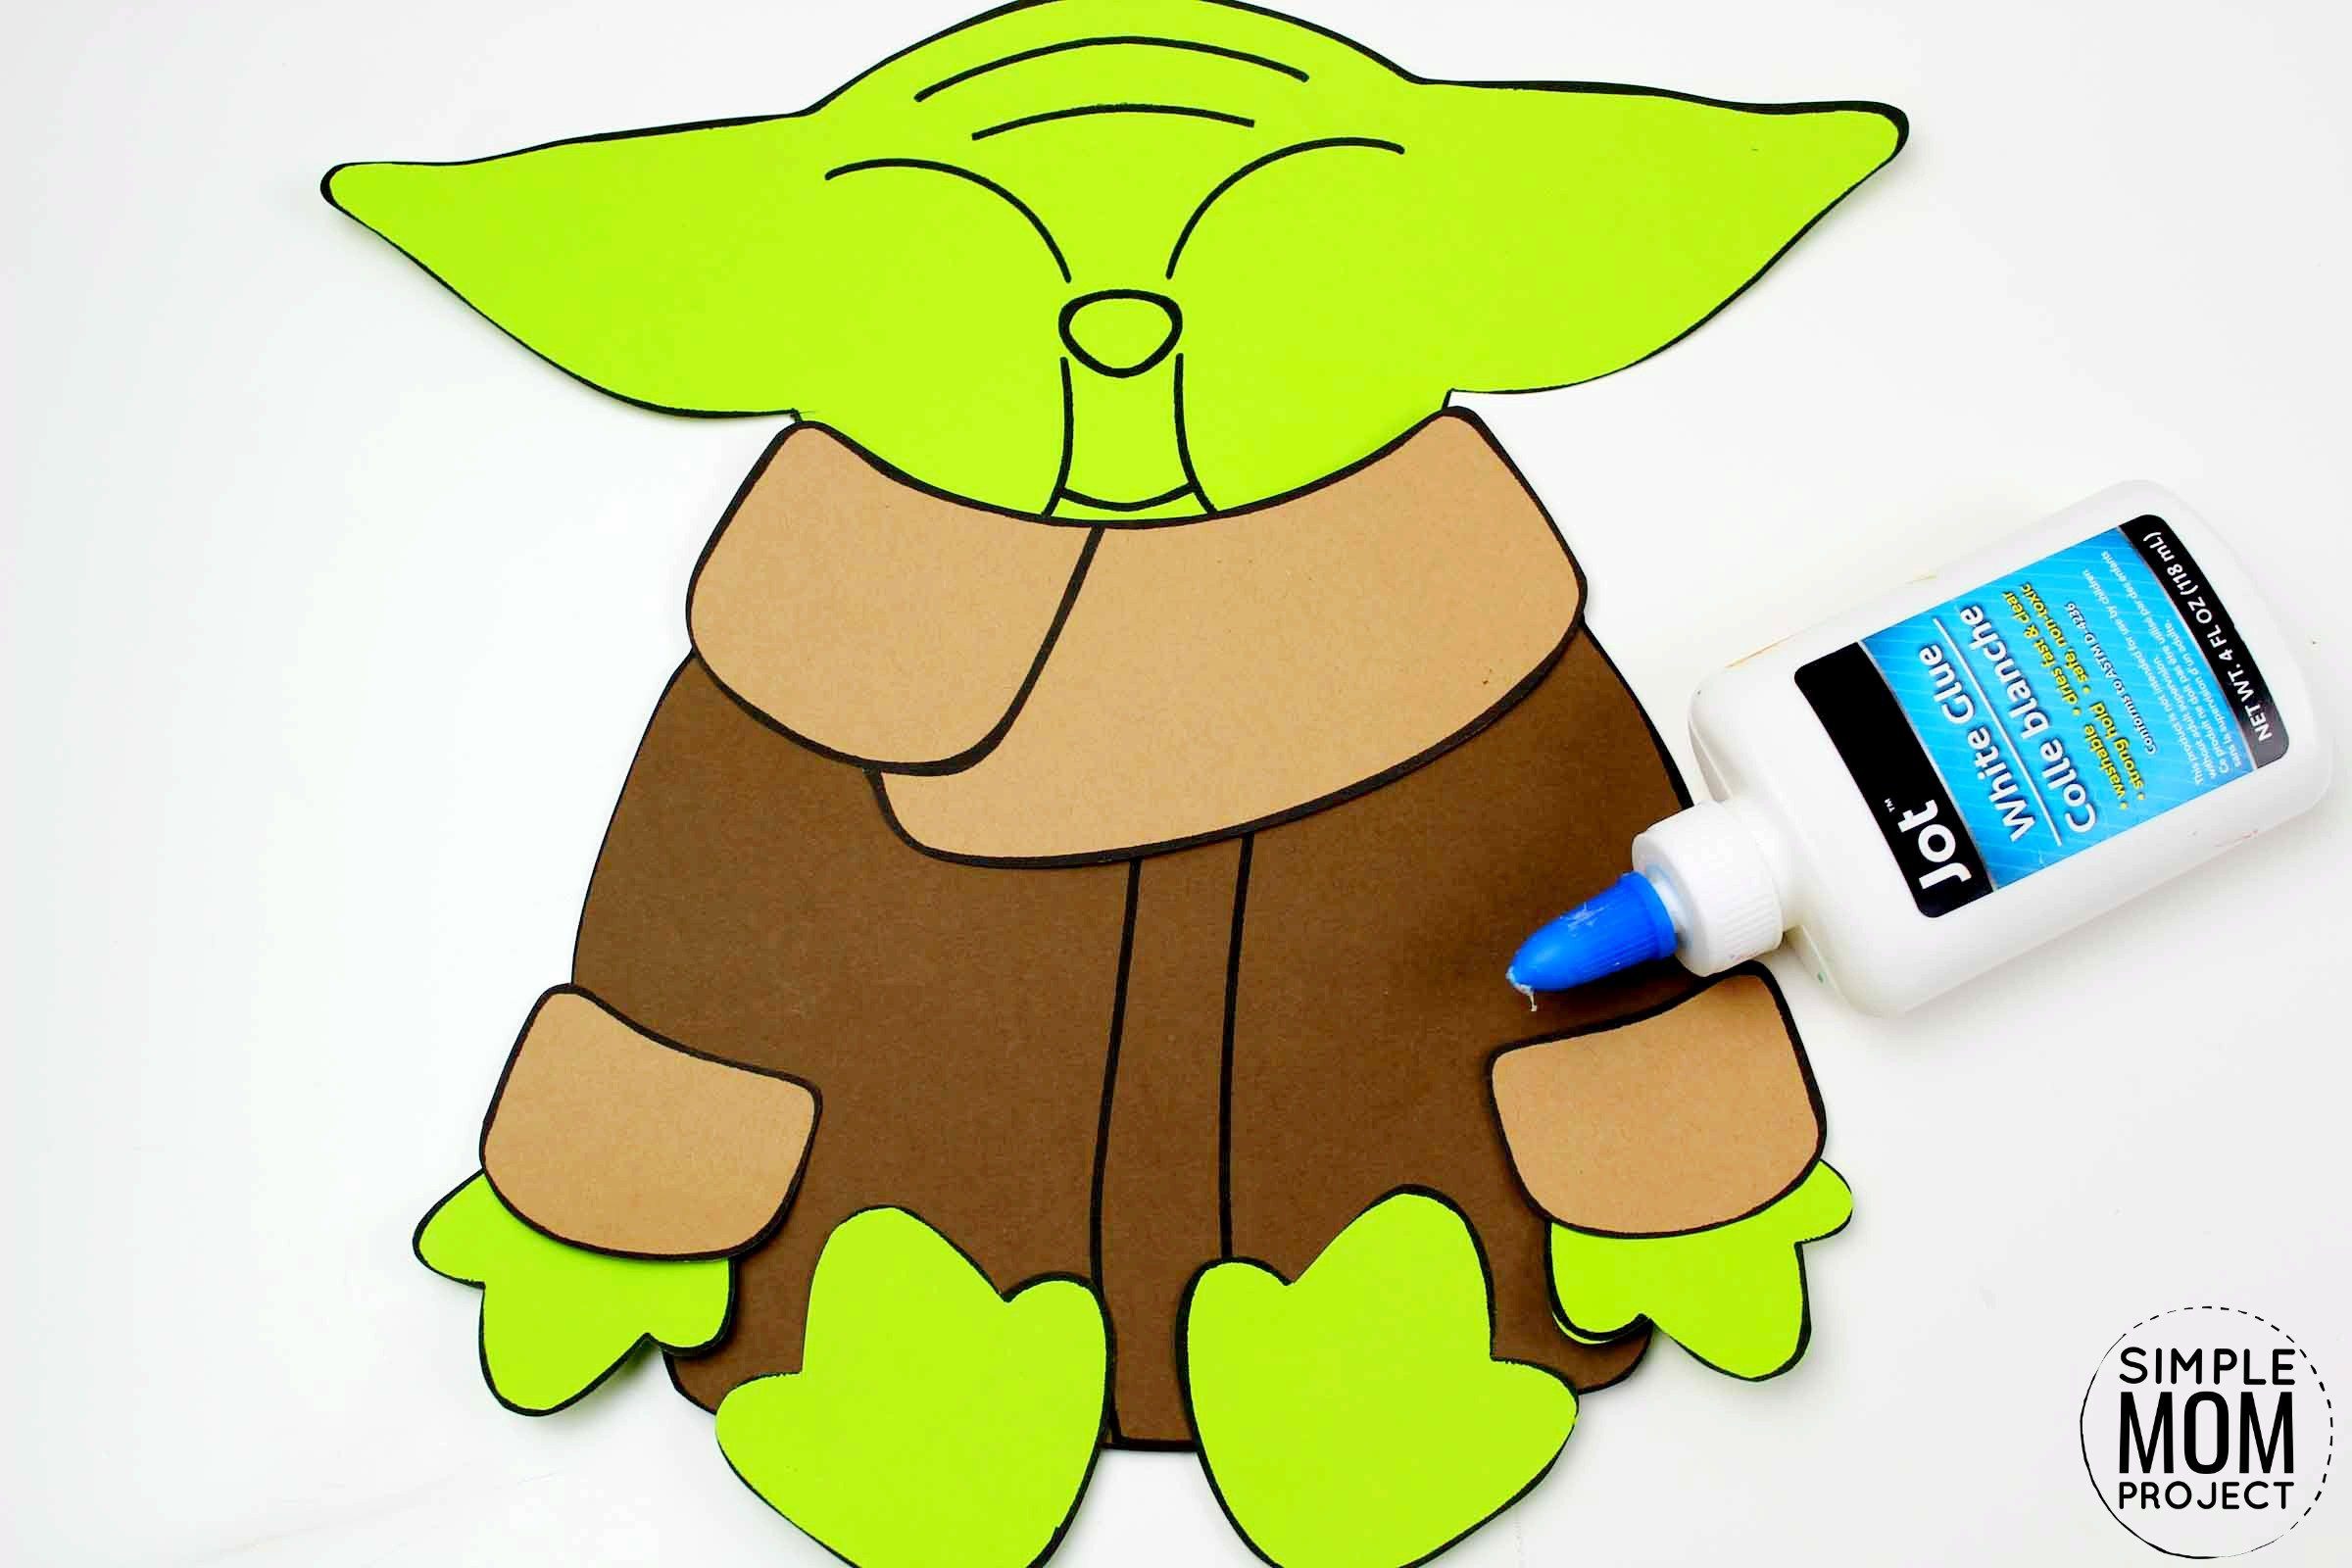 Free Printable Star Wars Baby Yoda Craft for Kids, Preschoolers and toddlers 4